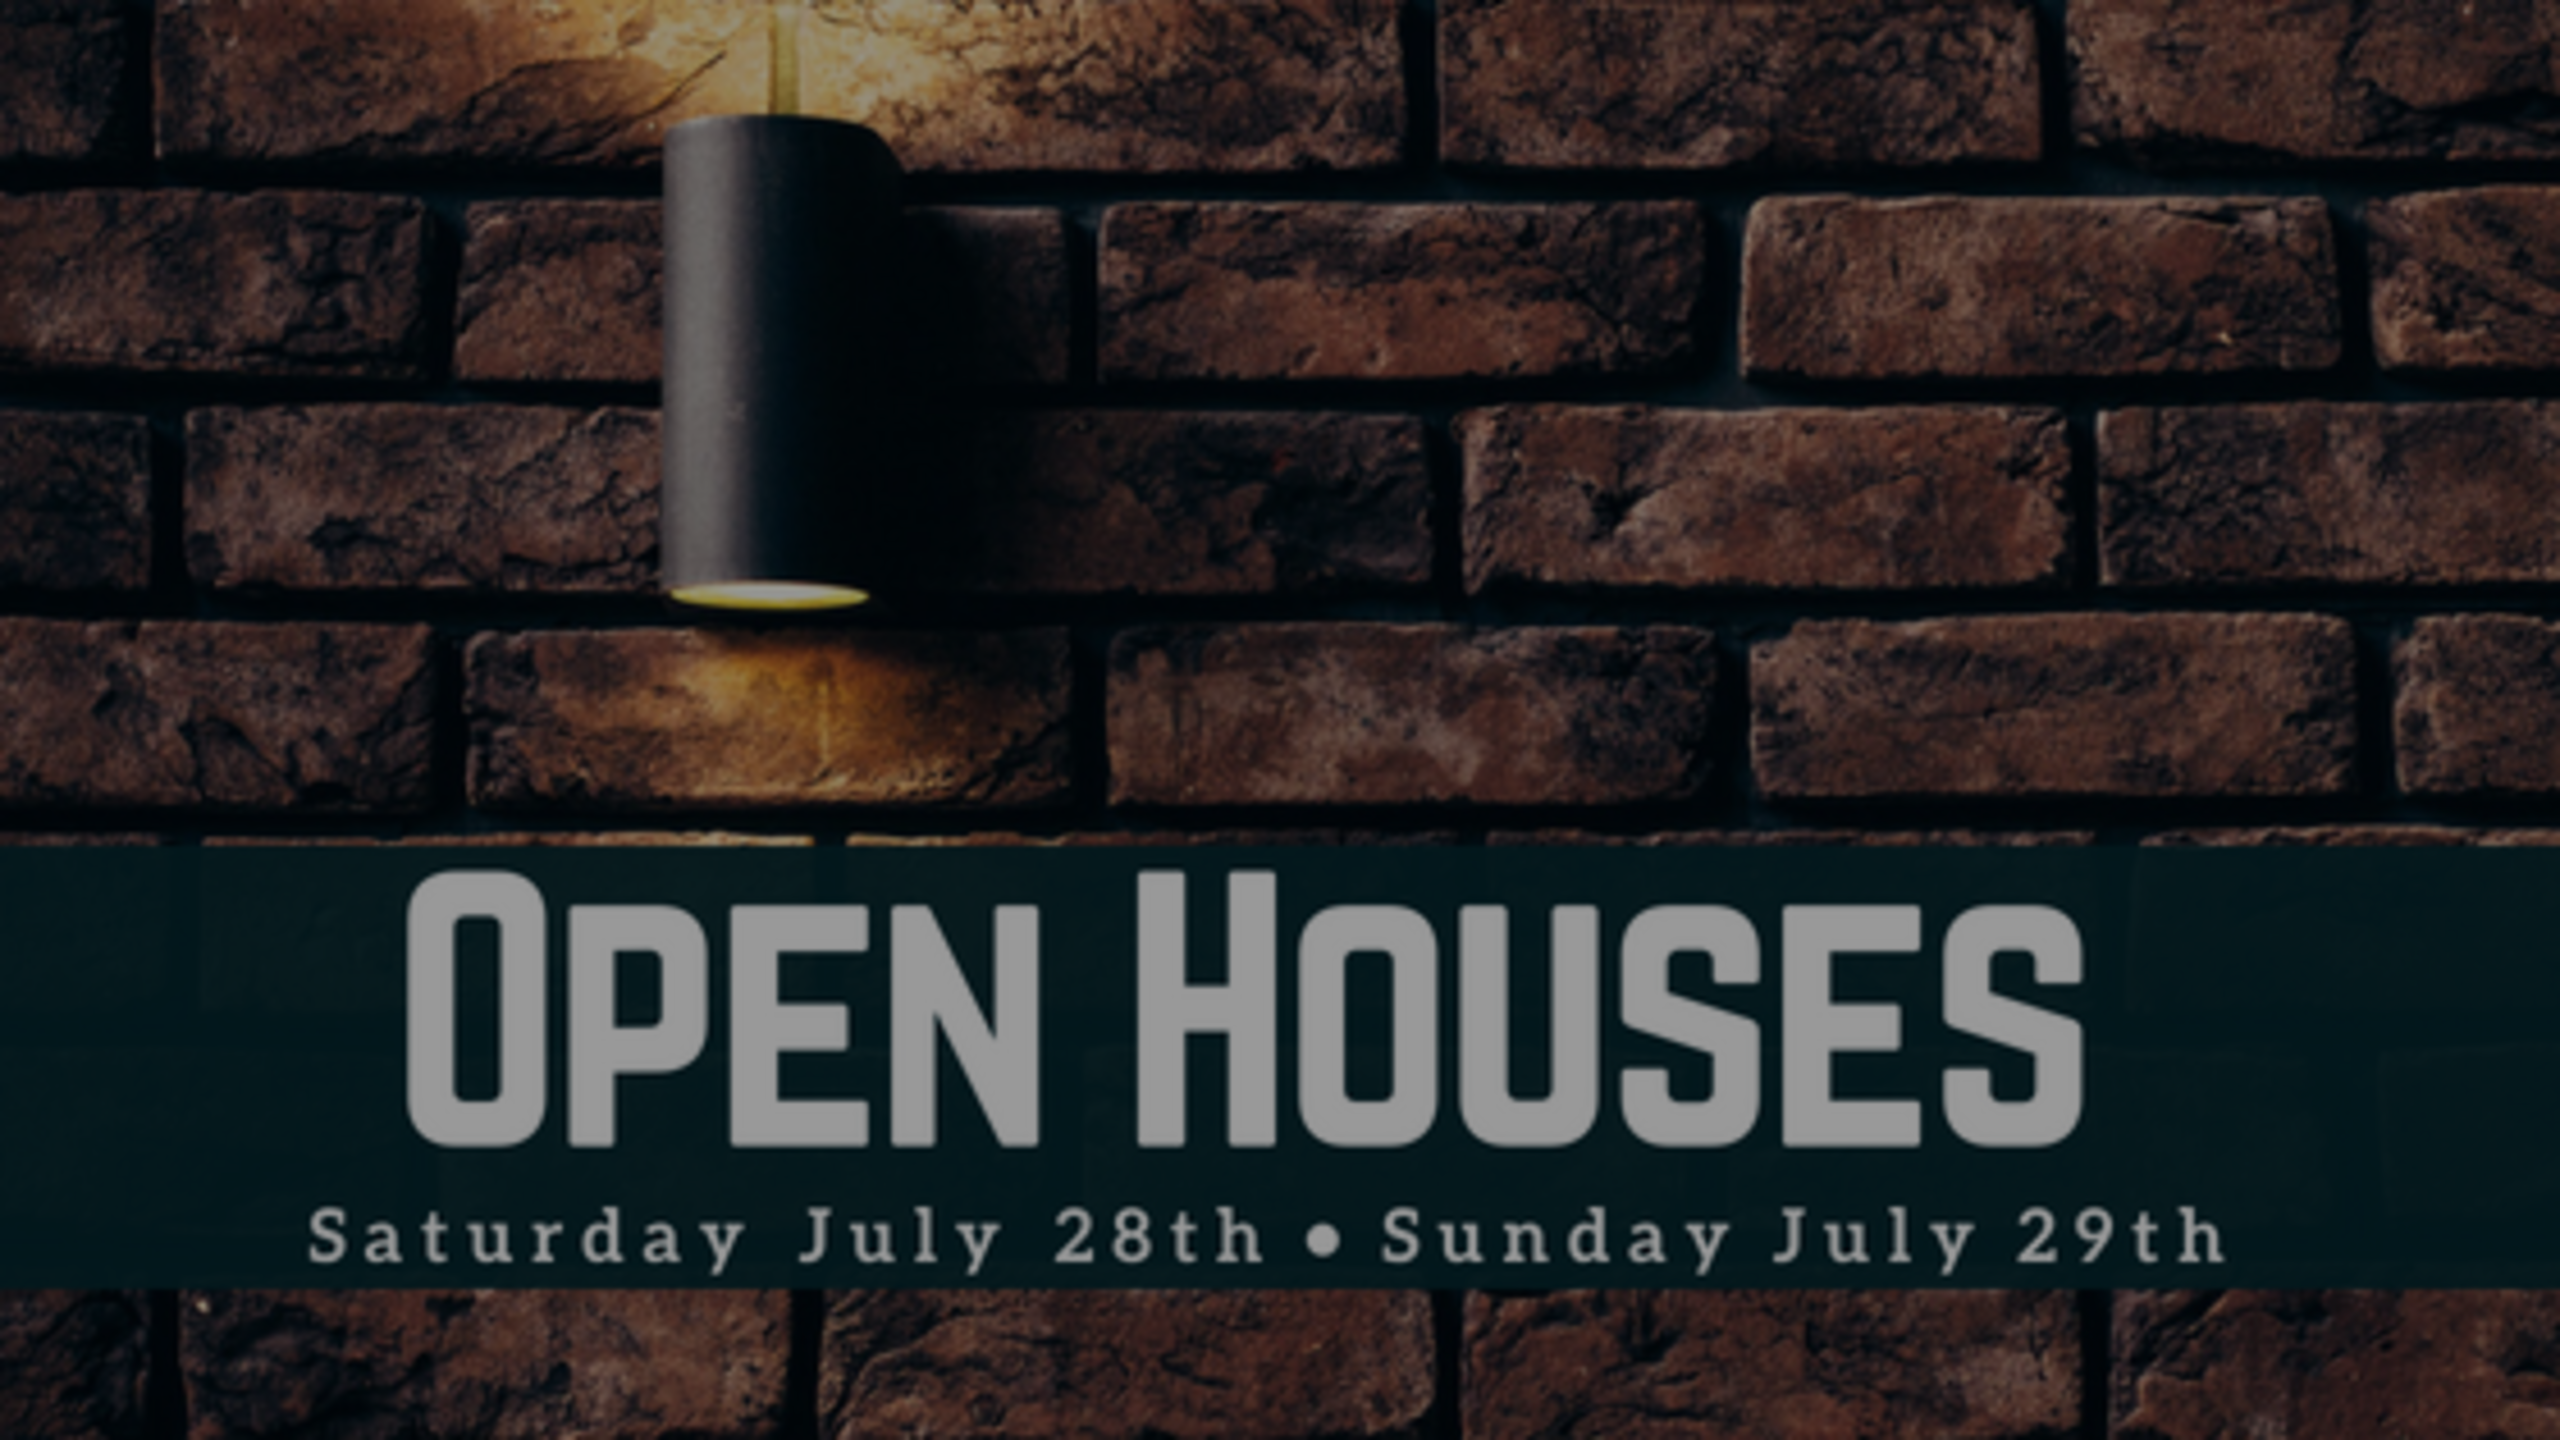 Our Open Houses: Weekend of 7/28 – 7/29